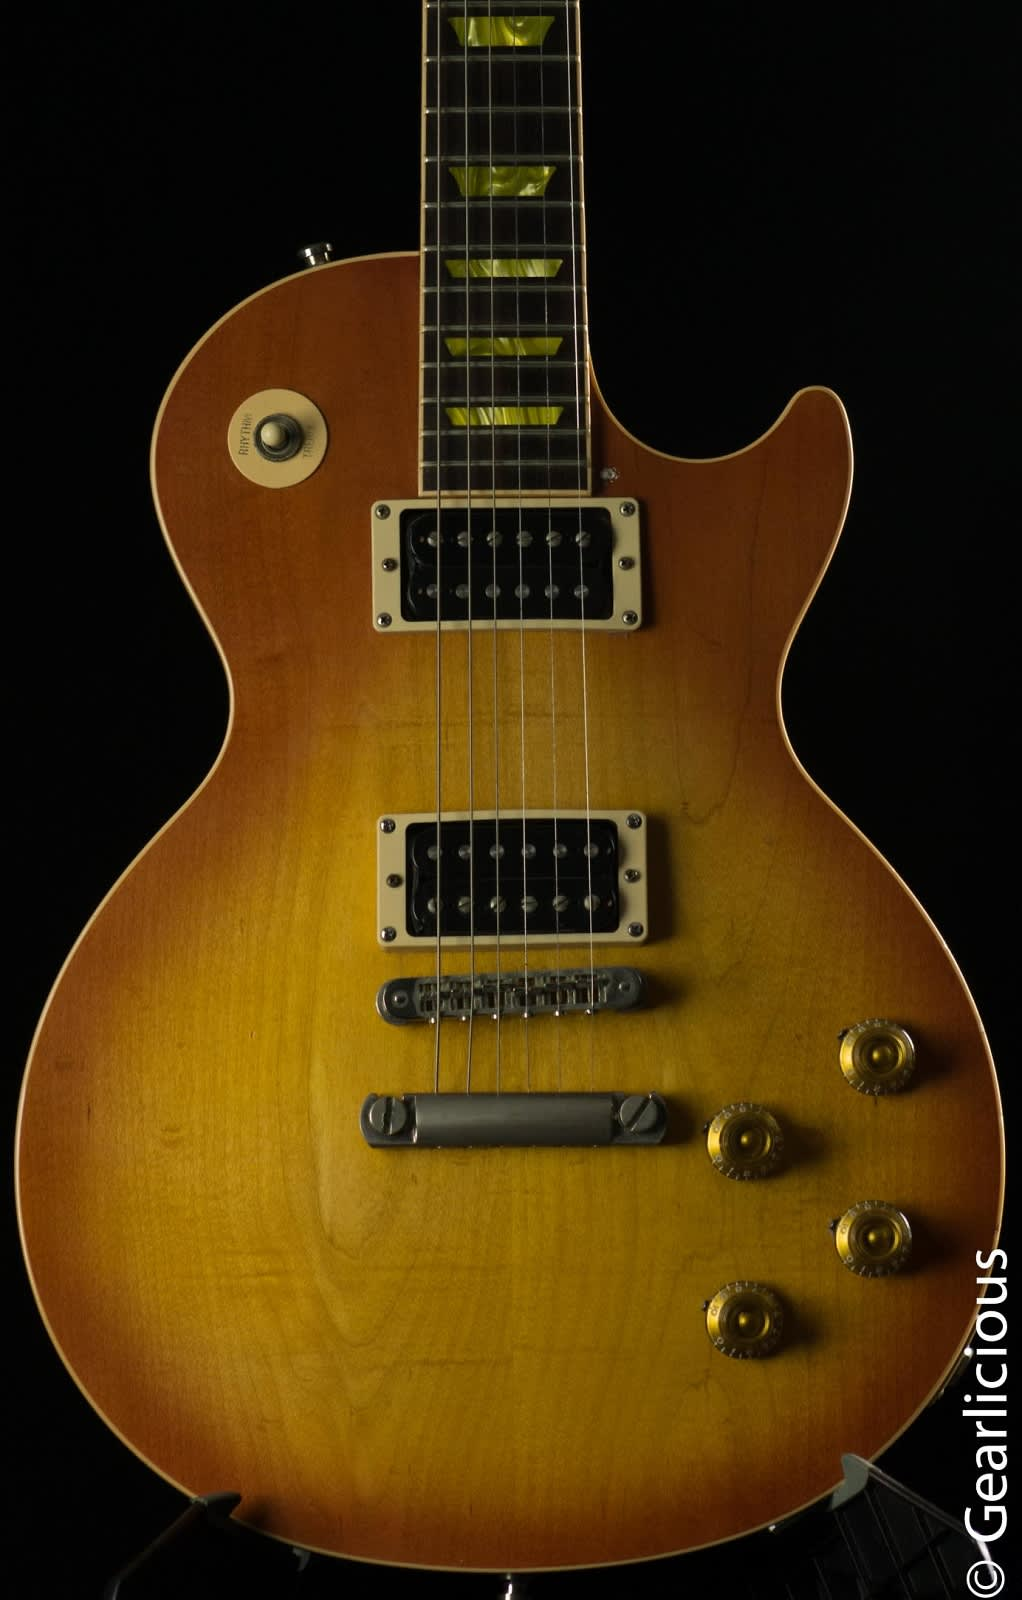 2005 Gibson Les Paul Classic 1960 Reissue Light Burst